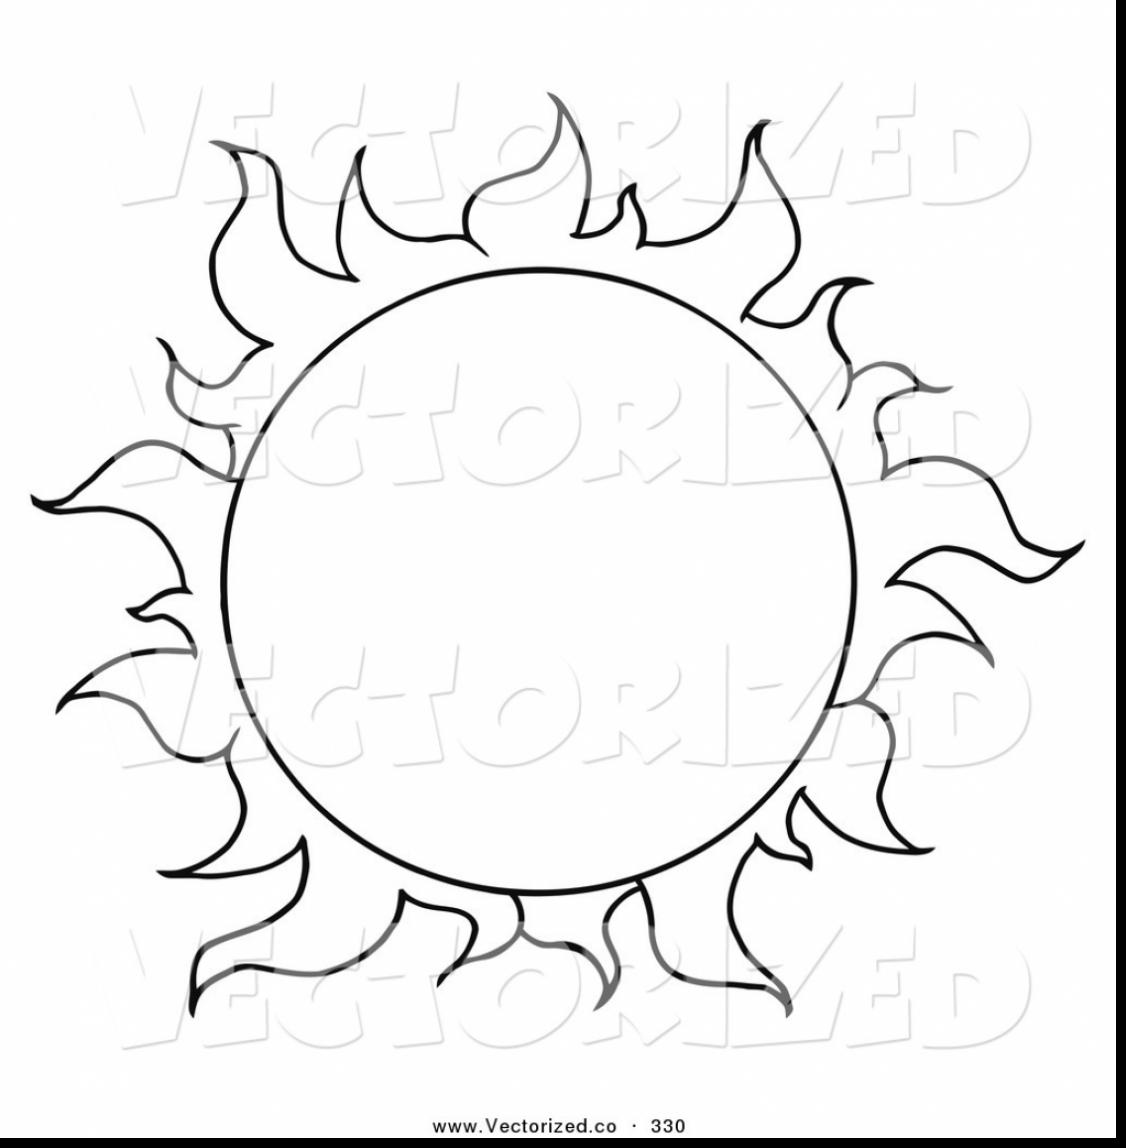 1126x1148 Marvelous Sun Coloring Pages With Sun Coloring Page